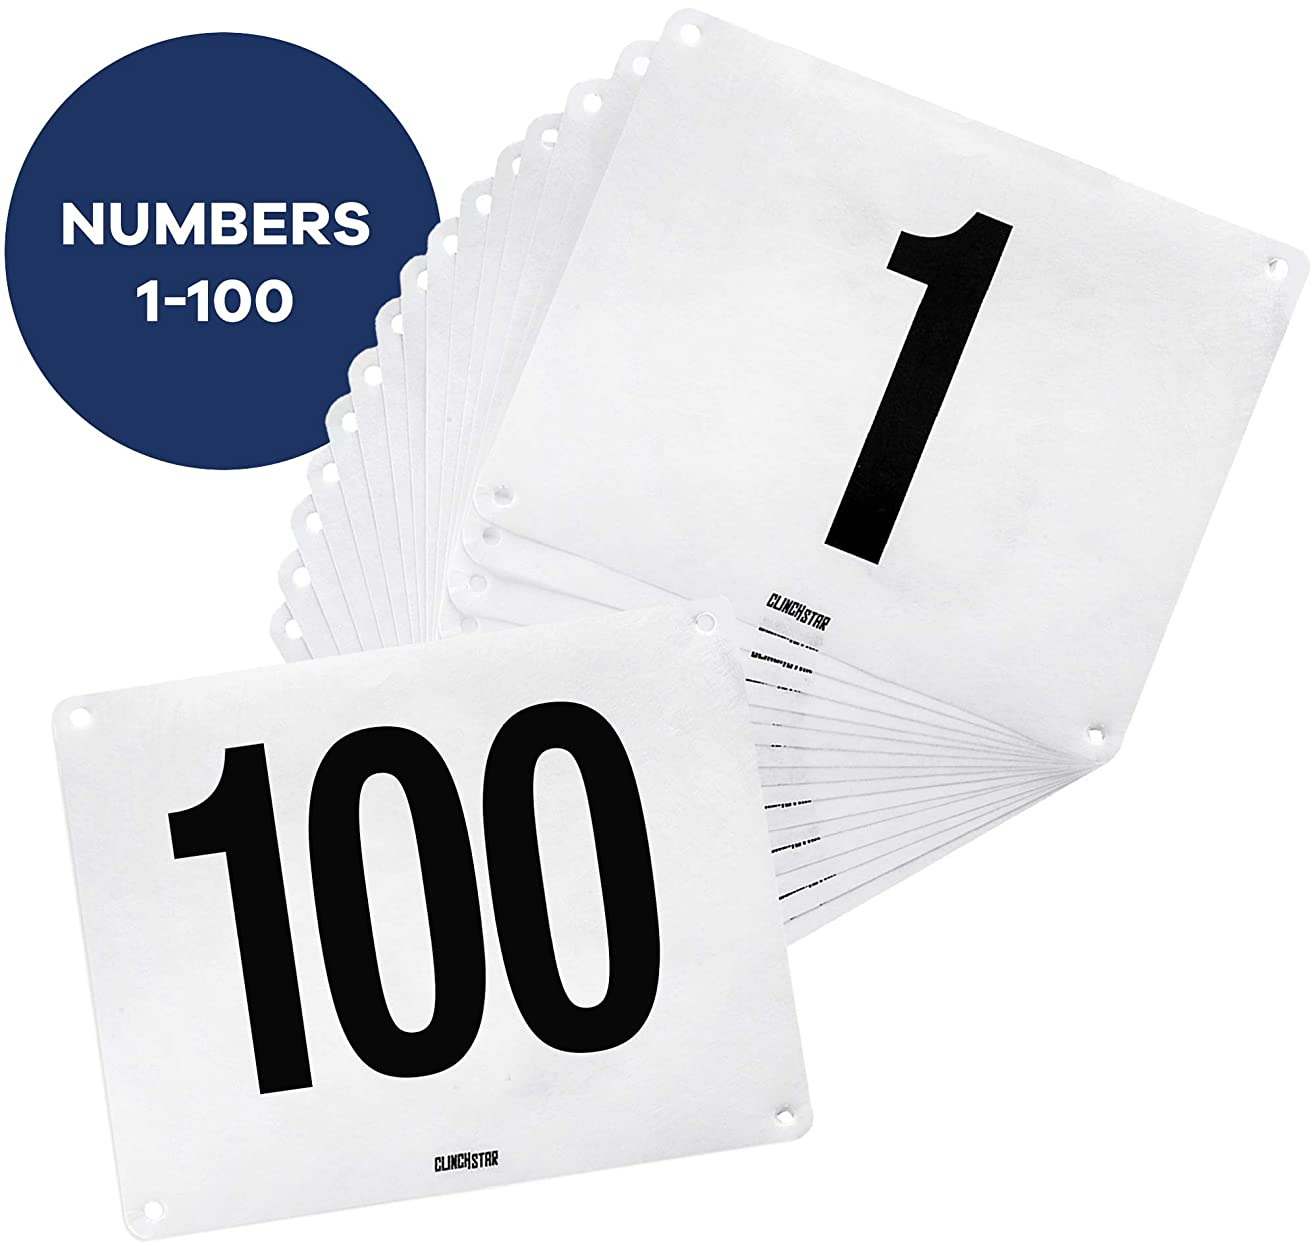 Clinch Star Running Bib Replacements - Large Numbers for Marathon Races and Events - Tyvek Tearproof and Waterproof 6 X 7.5 Inches (Safety Pins Not Included)